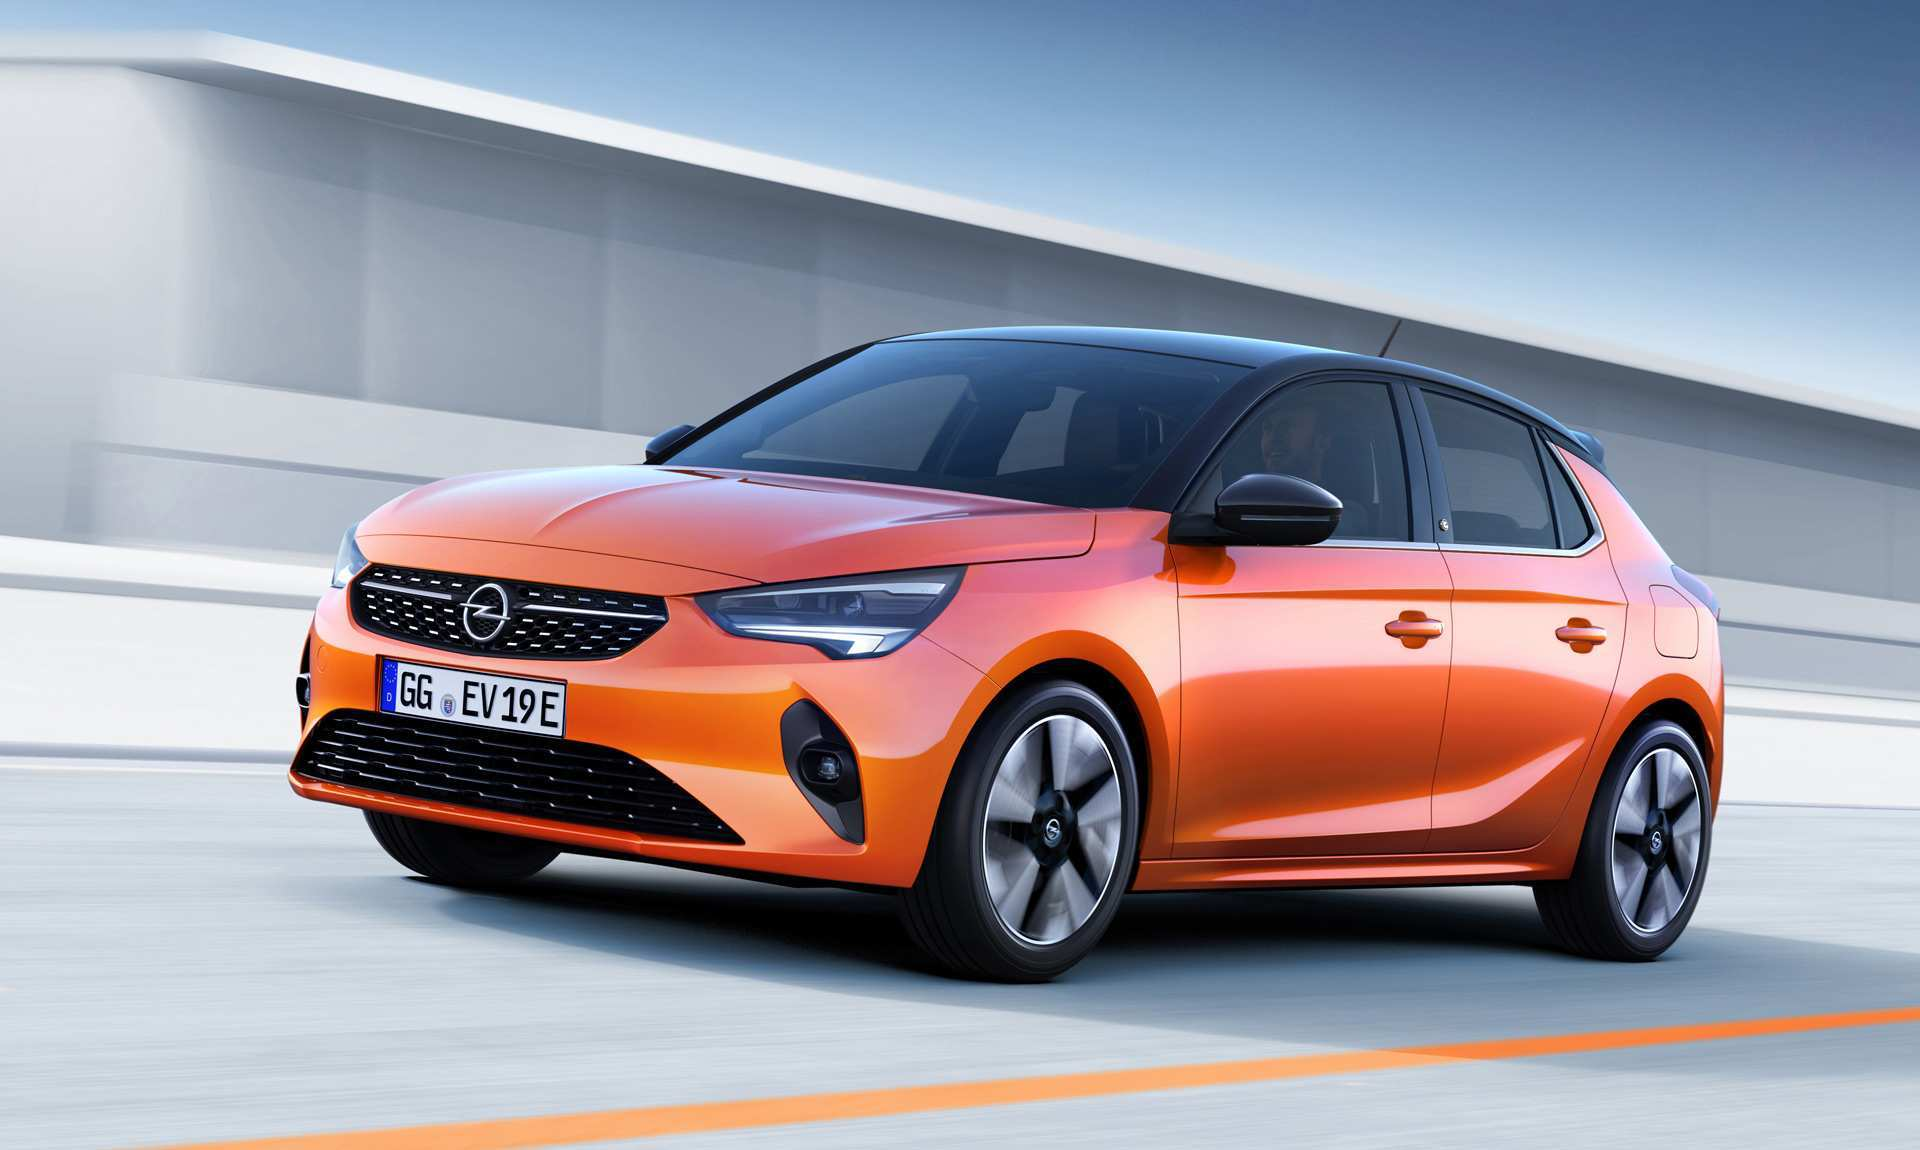 23 A Opel Will Launch Full Electric Corsa In 2020 Release Date And Concept